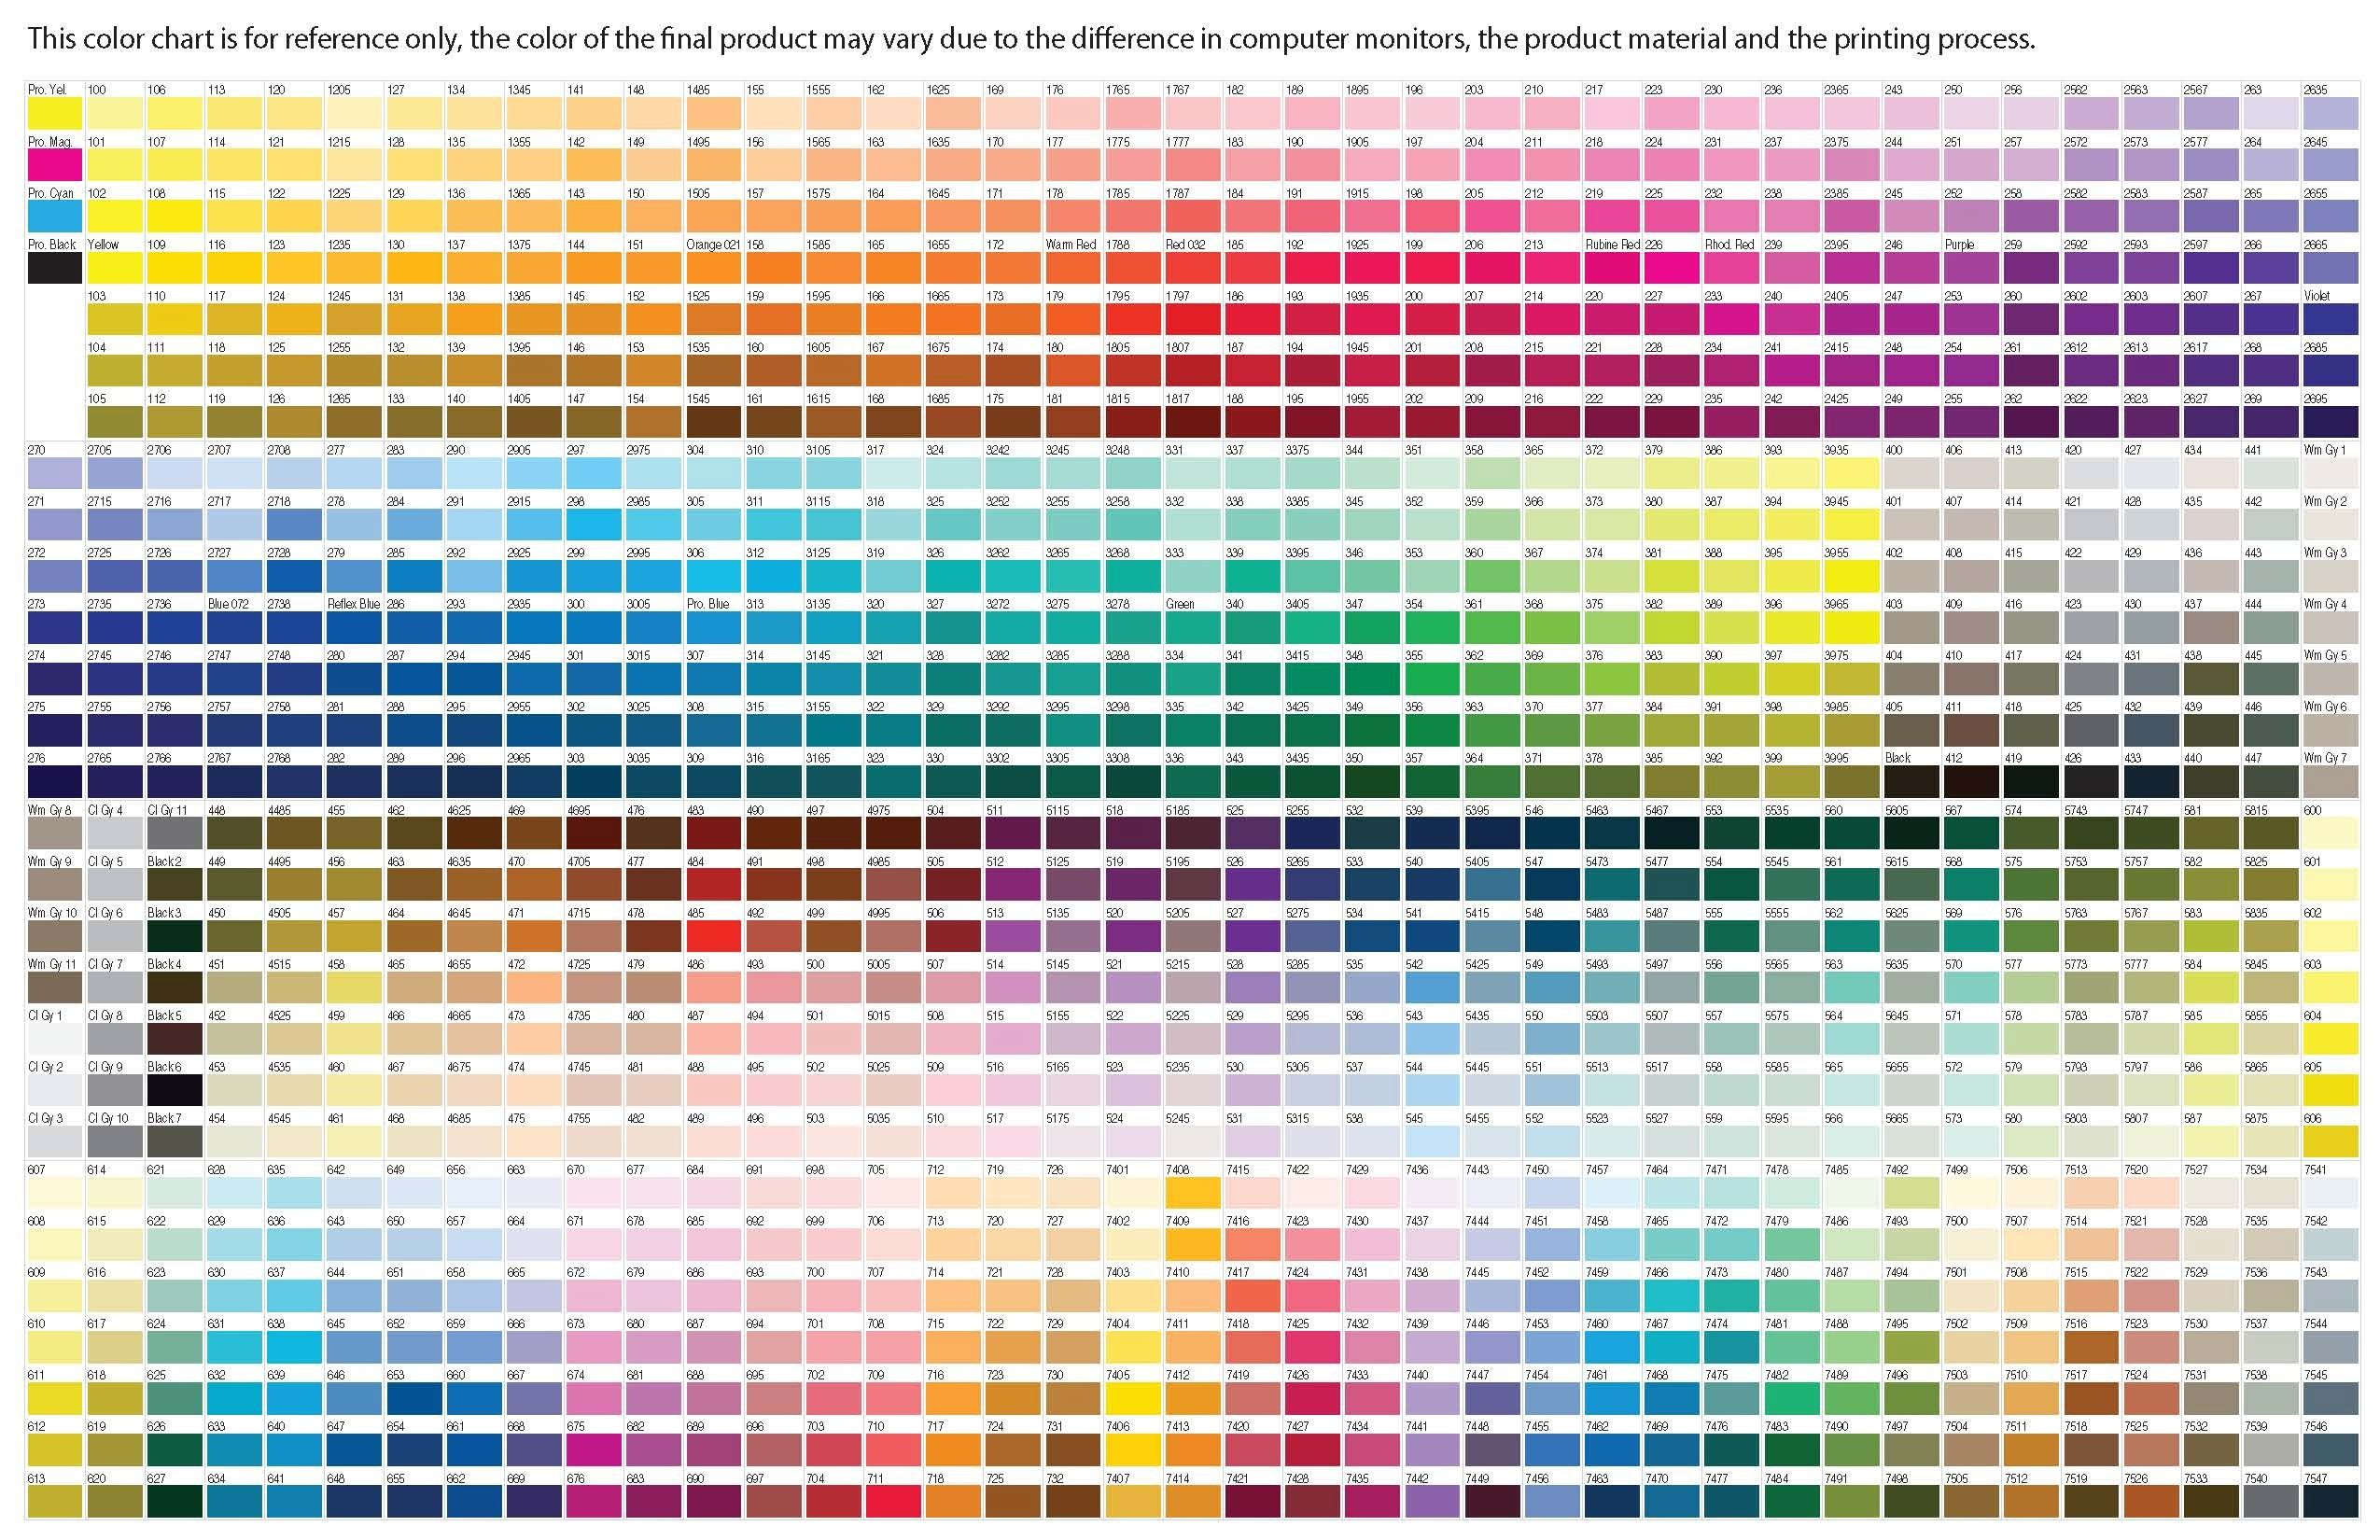 pantone color charts - Hizir kaptanband co